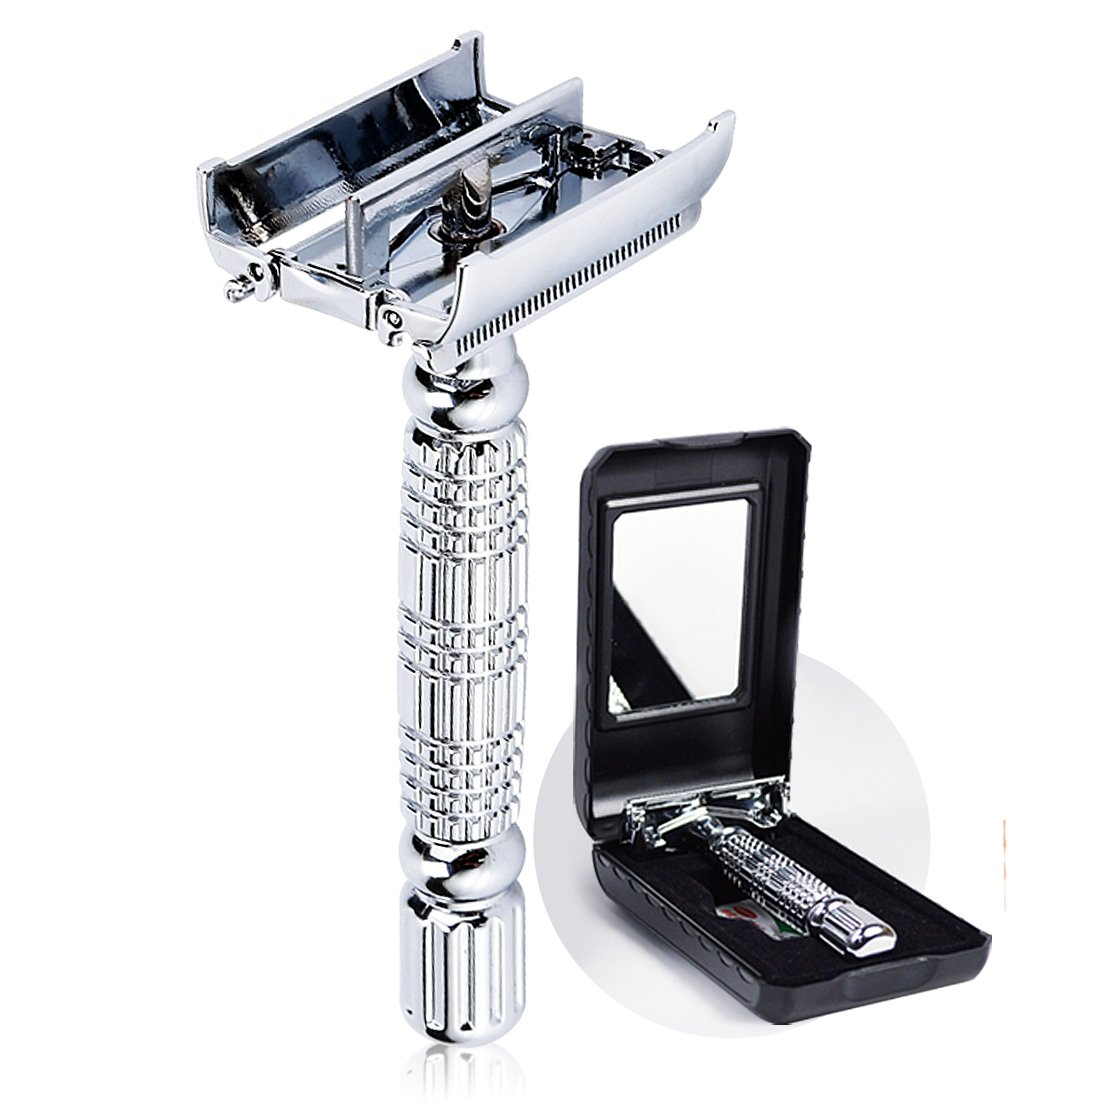 BAILI Twin-bladed Double Edge Safety Razor Shaver Classic Men's Twist Butterfly Open Head with 1 Platinum Blade 1 Mirrored Travel Case, Silver, BD179 WEIDI BAILI